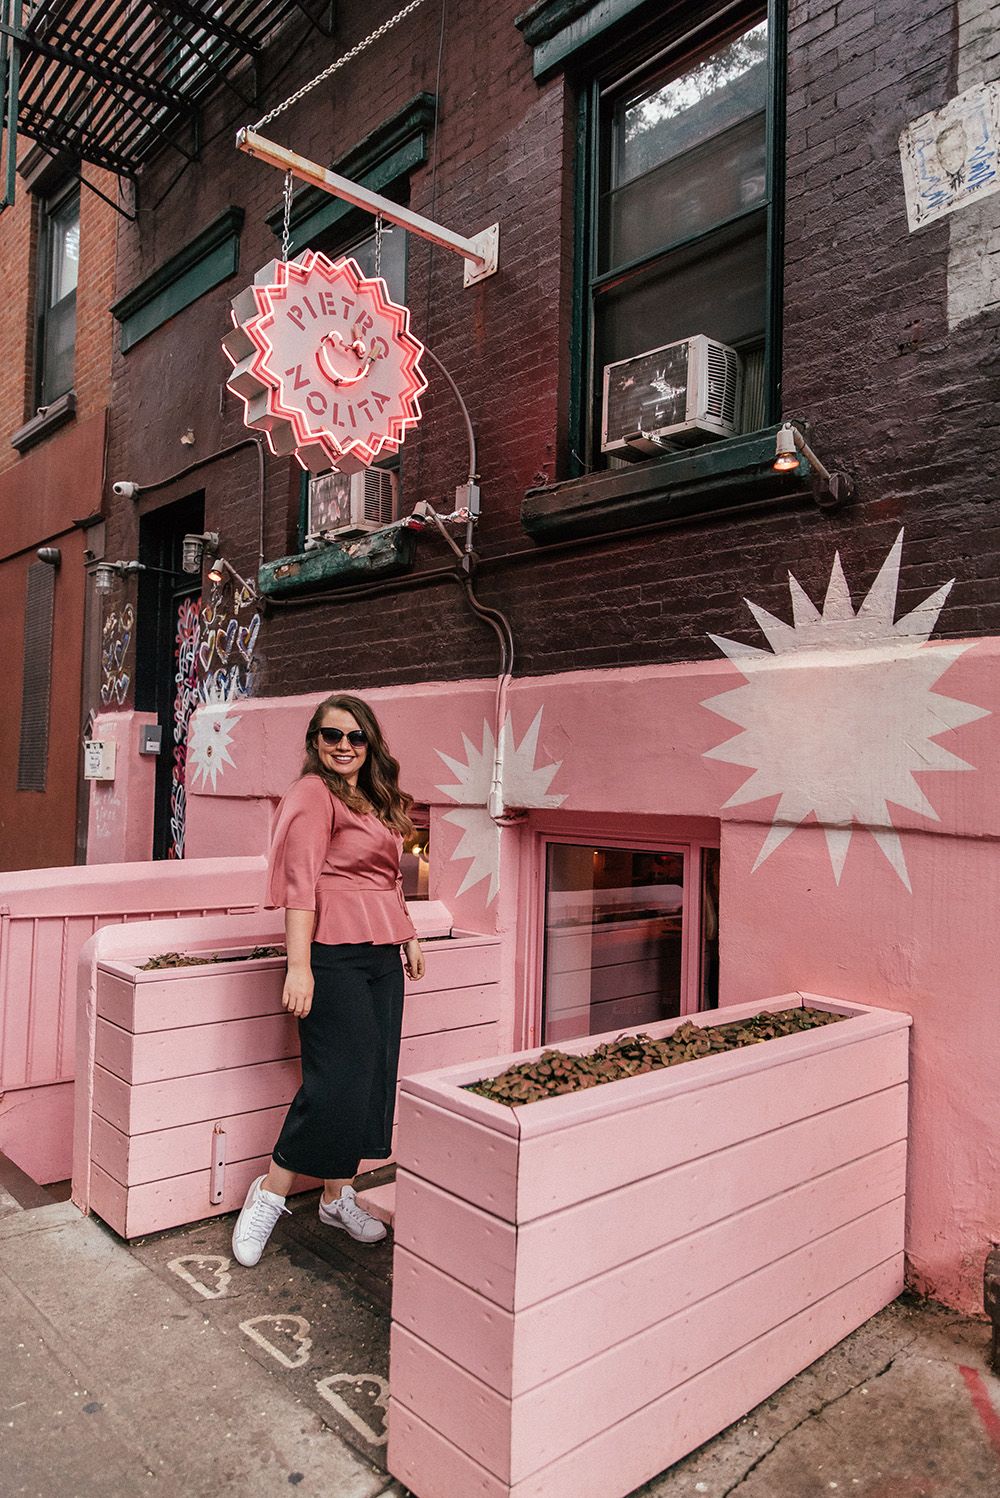 8 Favourite Instagram Spots in NYC by Charuk Studios